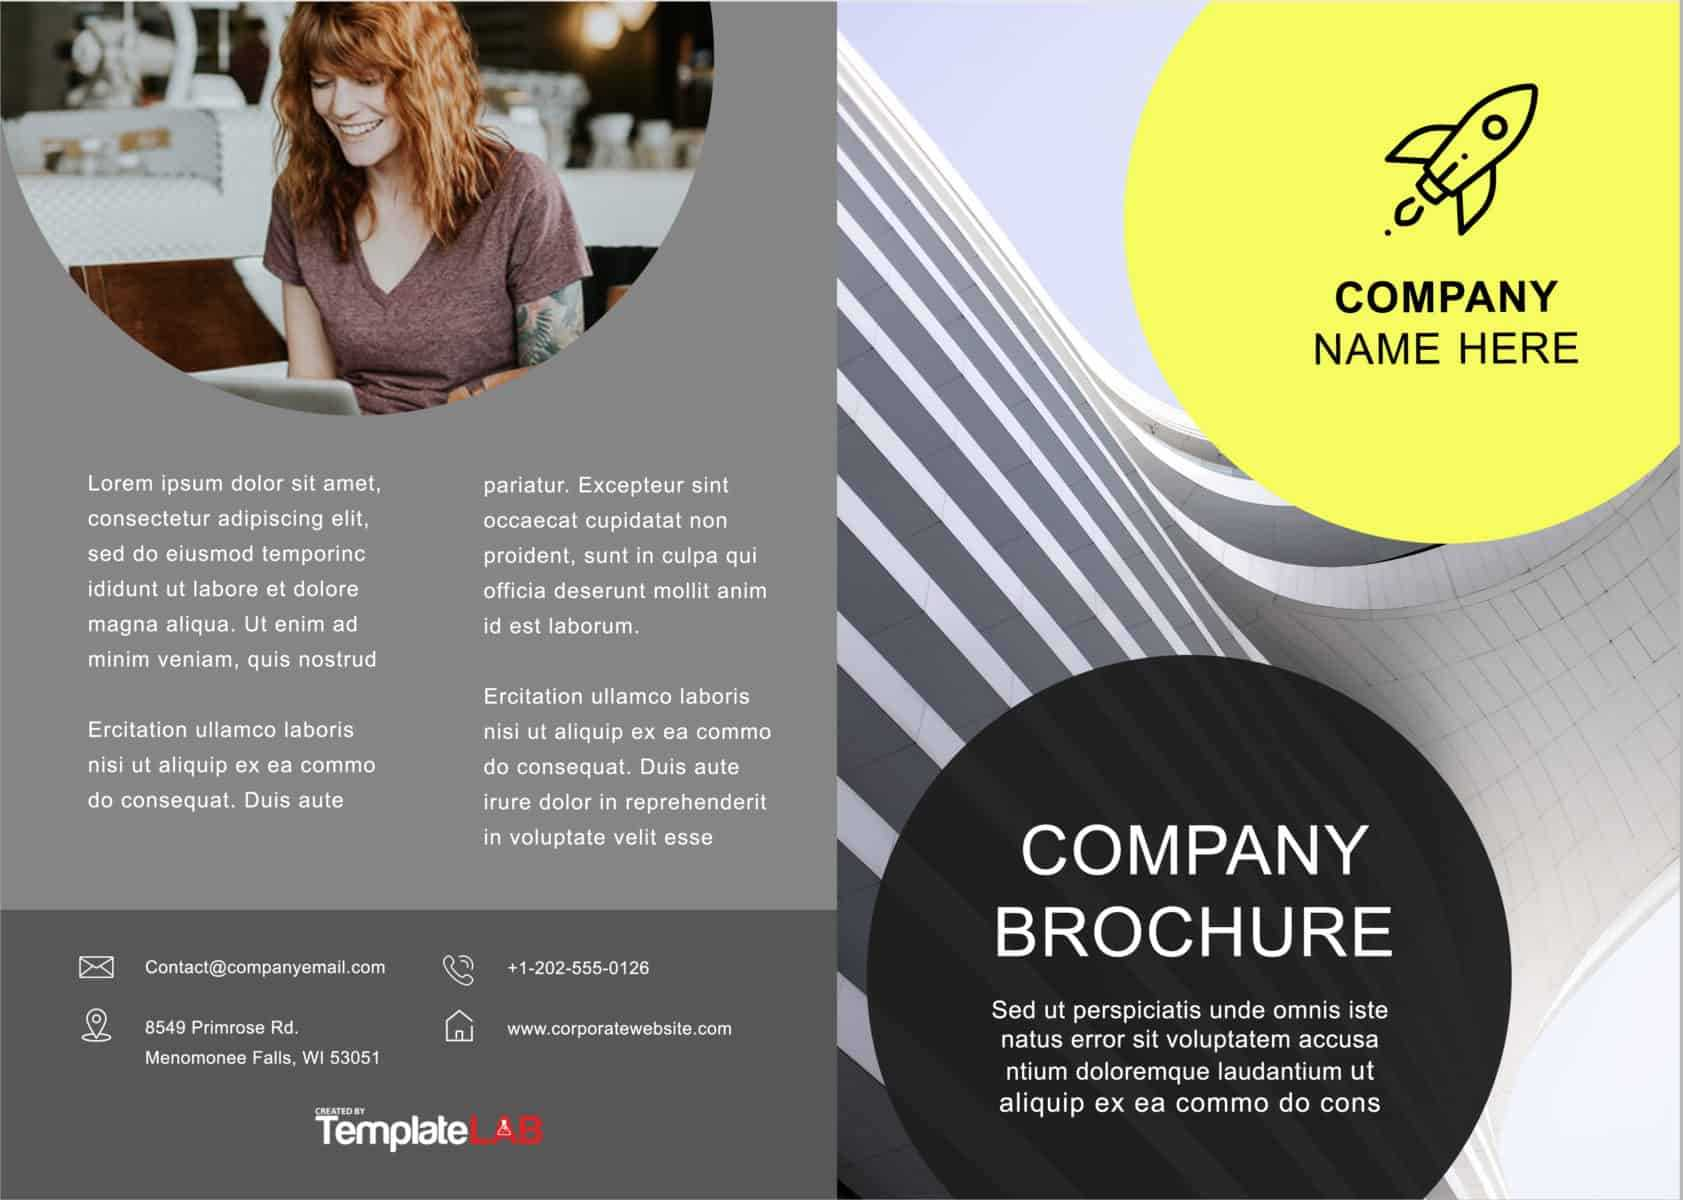 33 Free Brochure Templates (Word + Pdf) ᐅ Templatelab Within 4 Fold Brochure Template Word